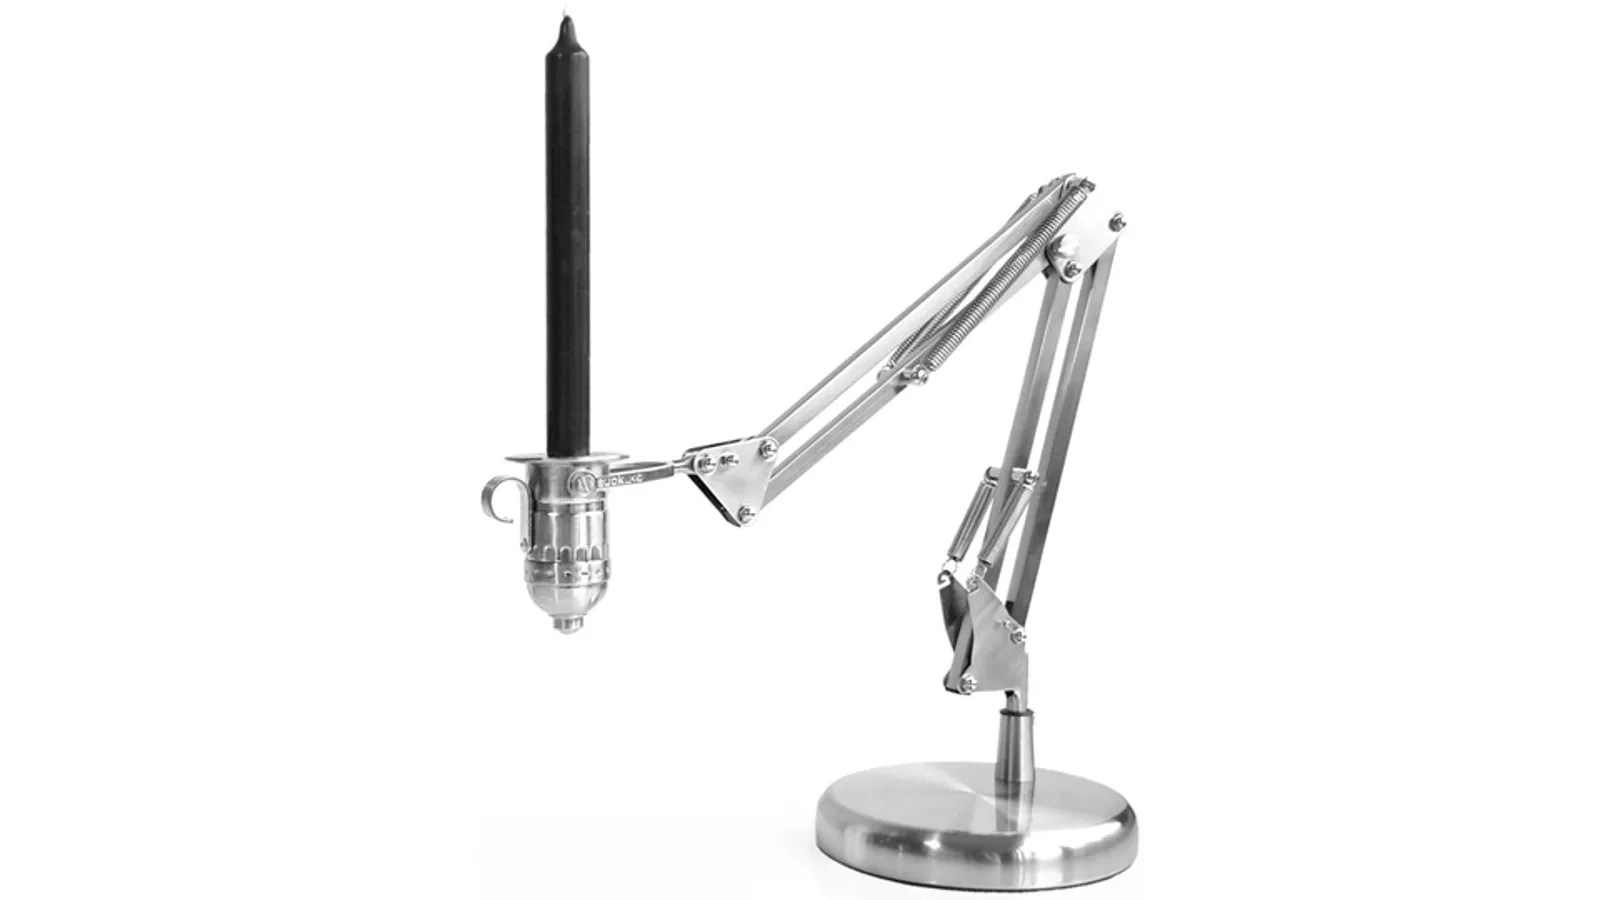 Pixar Desk Lamp Is This Articulating Candle Holder The Grandfather Of The